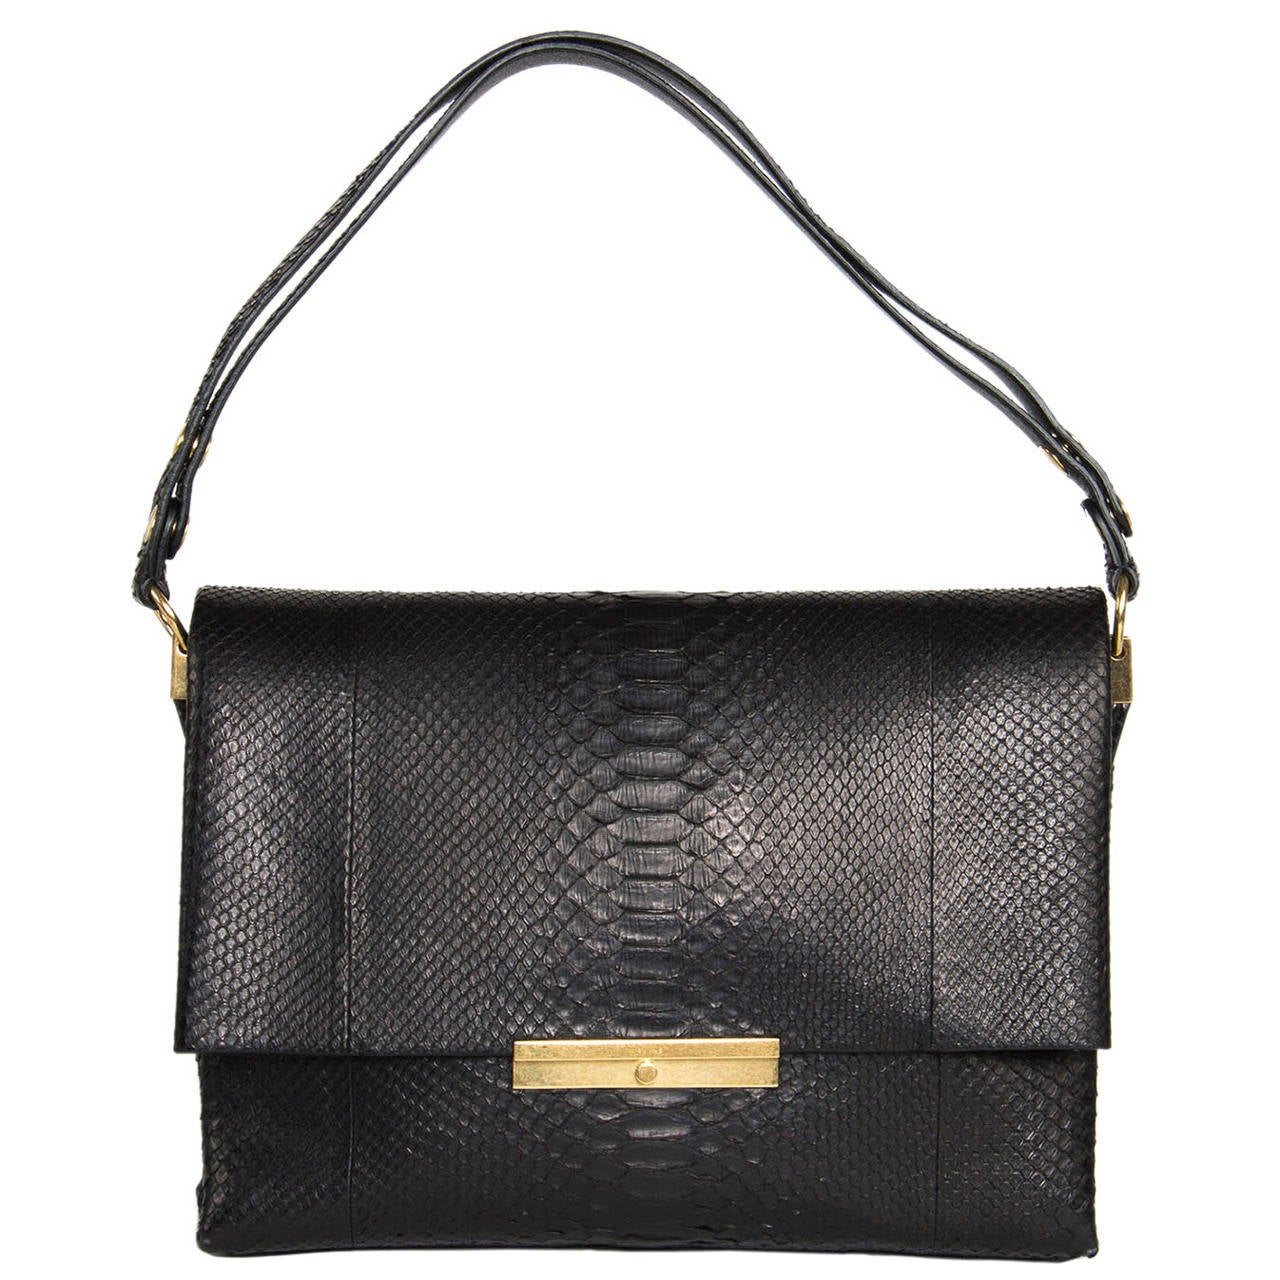 Celine Black Snake Skin Bag For Sale at 1stdibs 371abf1e00ac4